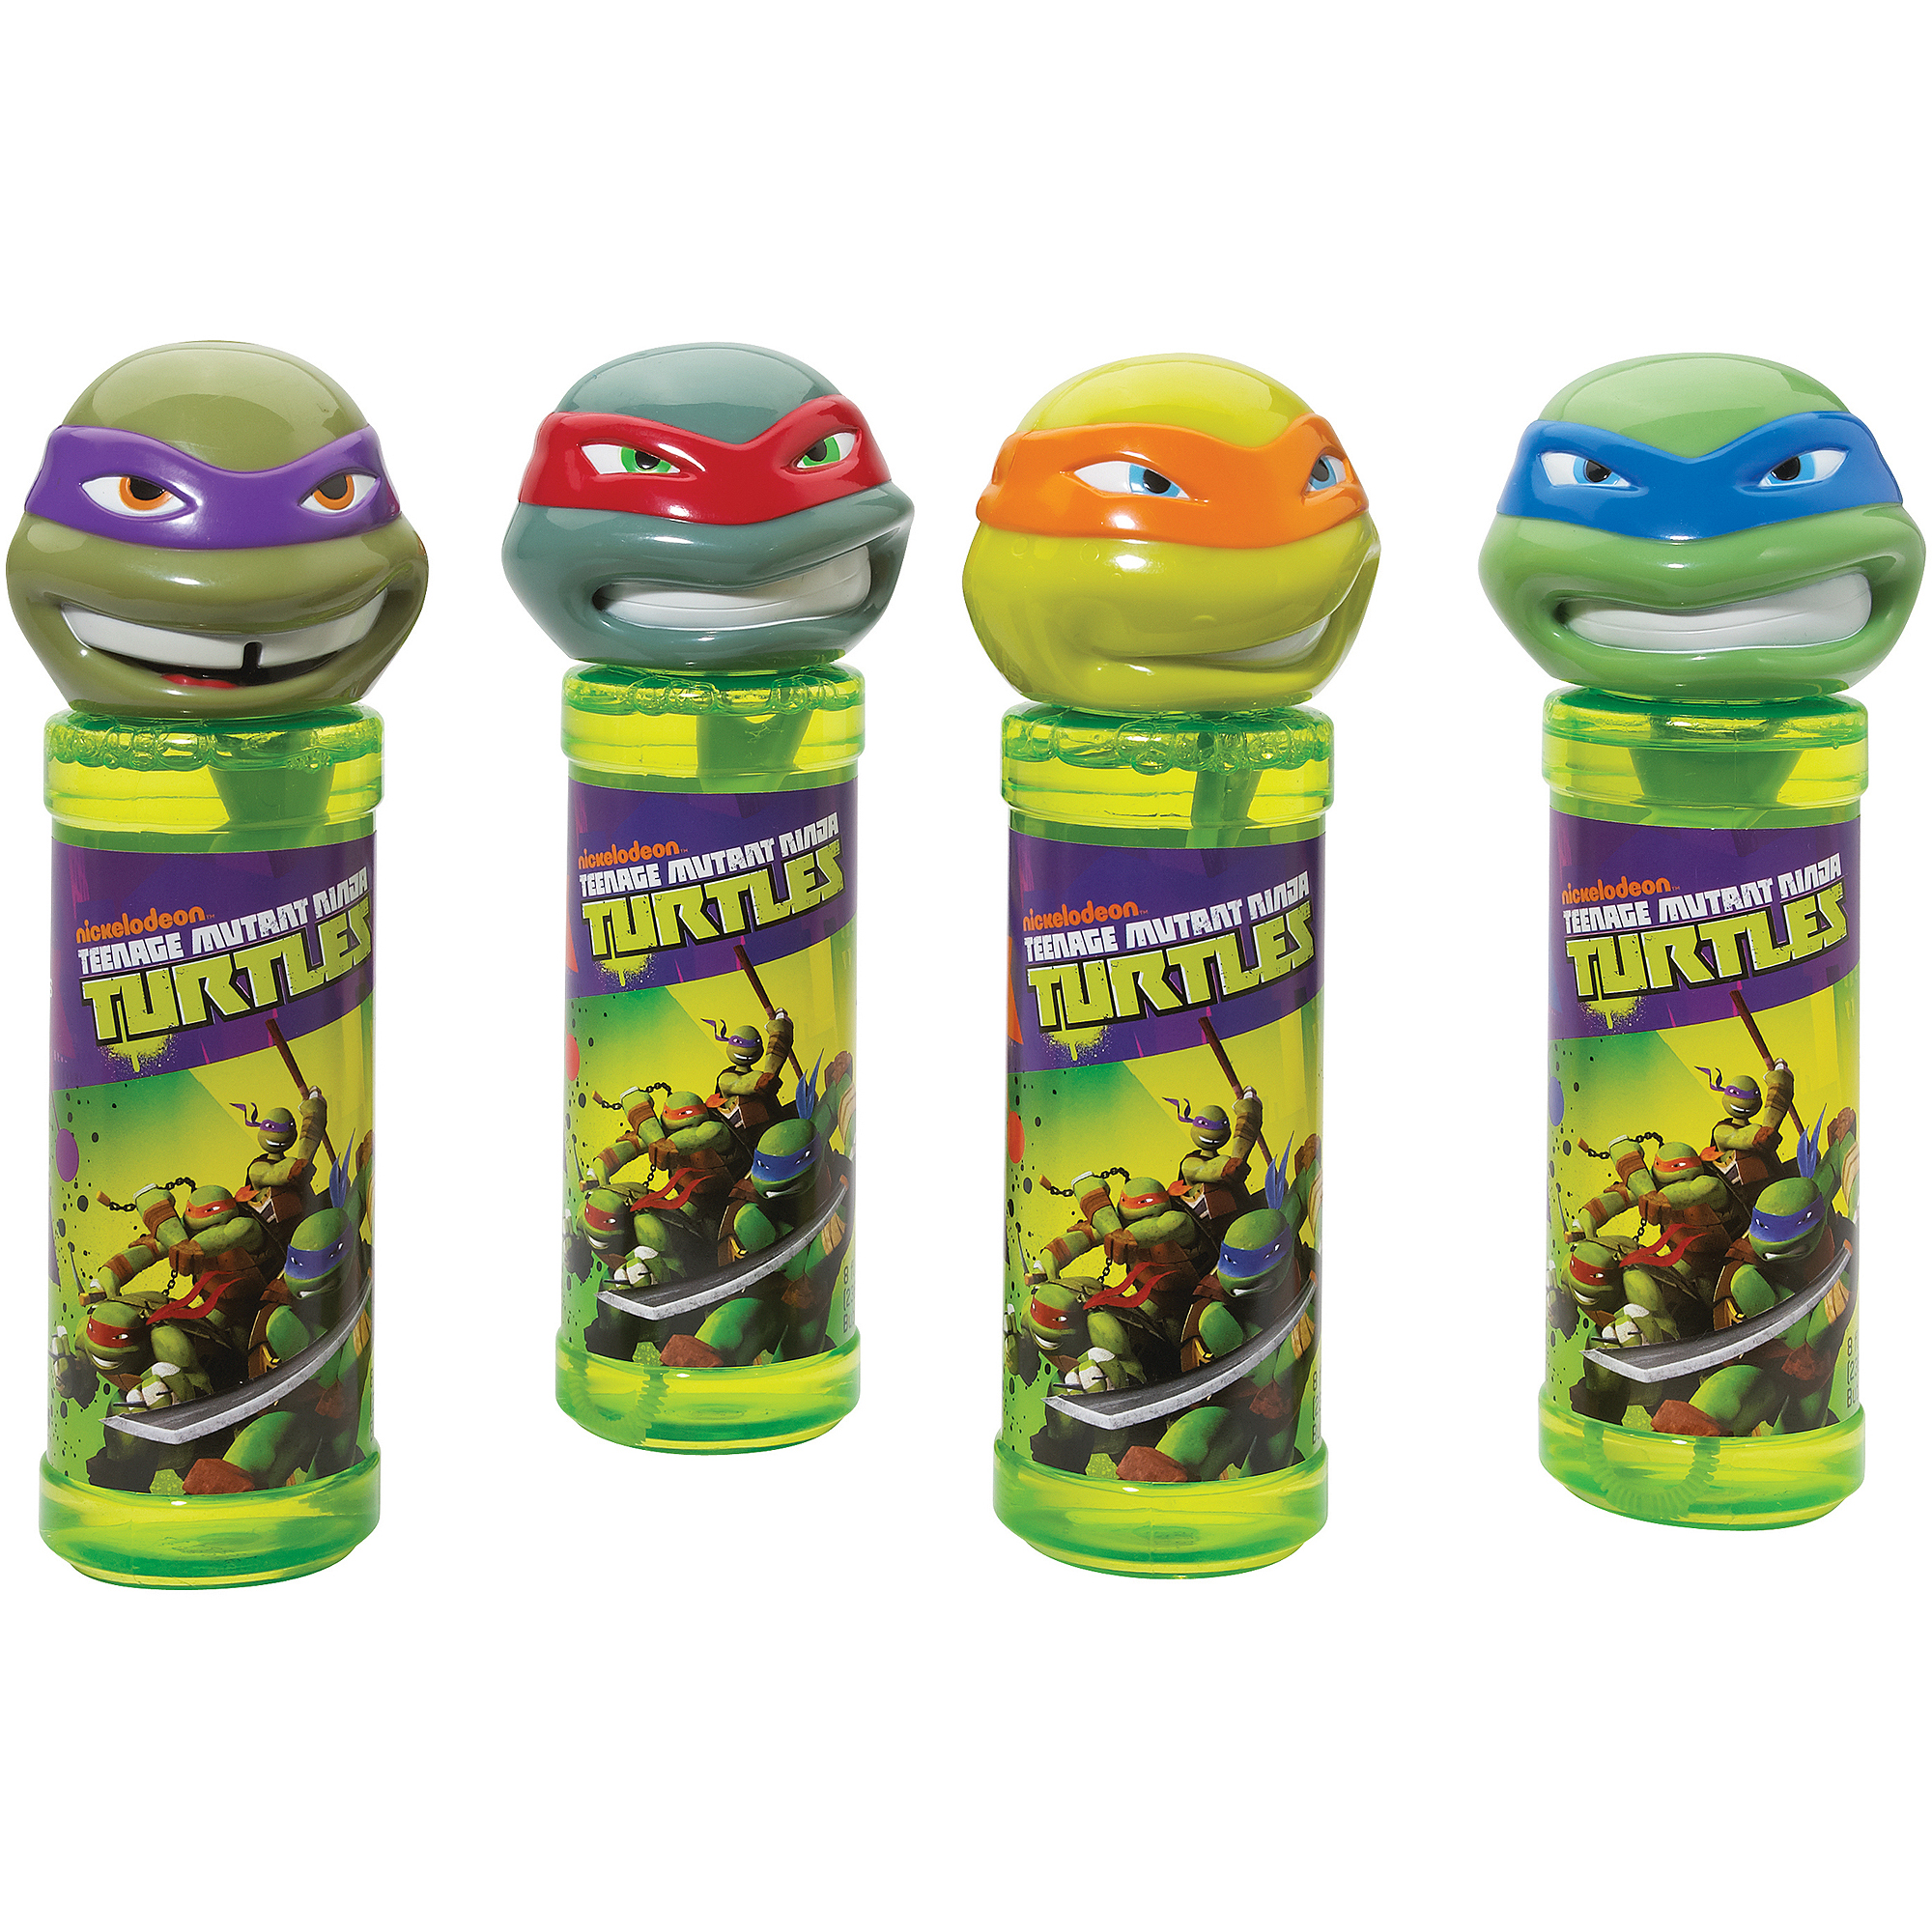 Little Kids Teenage Mutant Ninja Turtles Bottles of Bubbles, 4-Pack